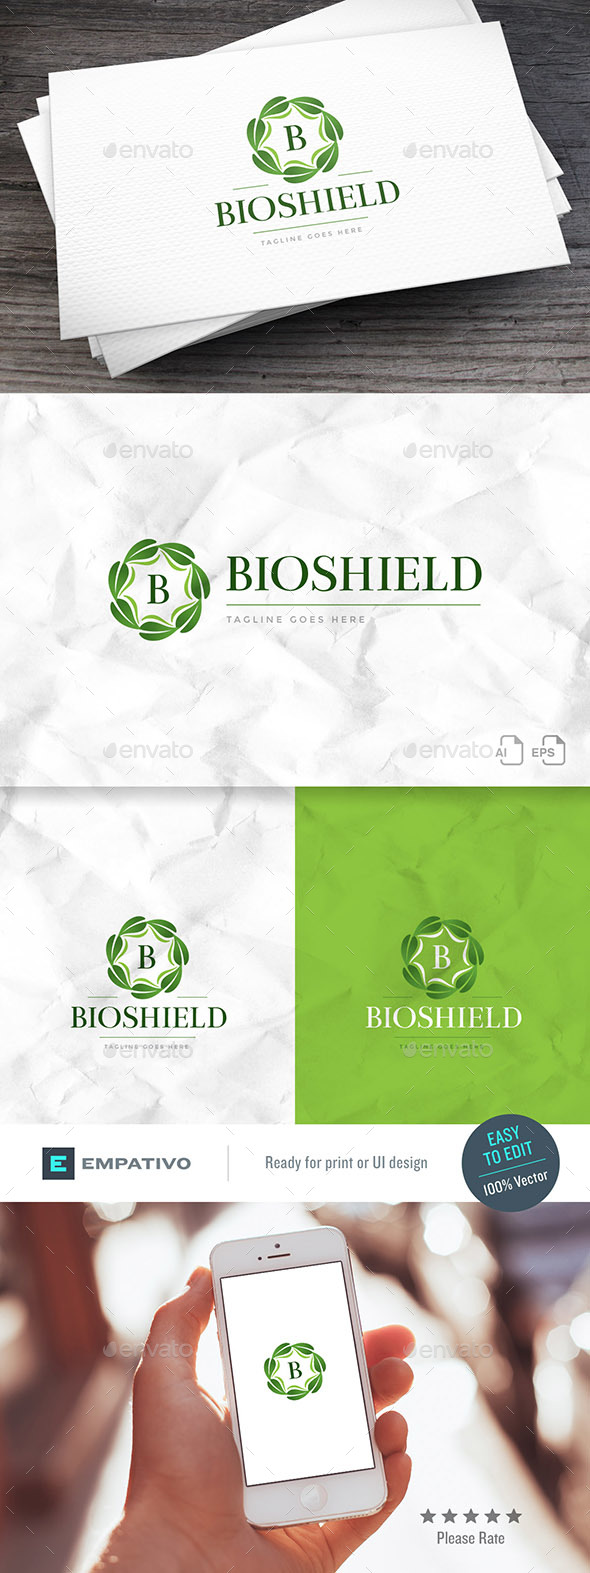 Bioshield Logo Template - Nature Logo Templates